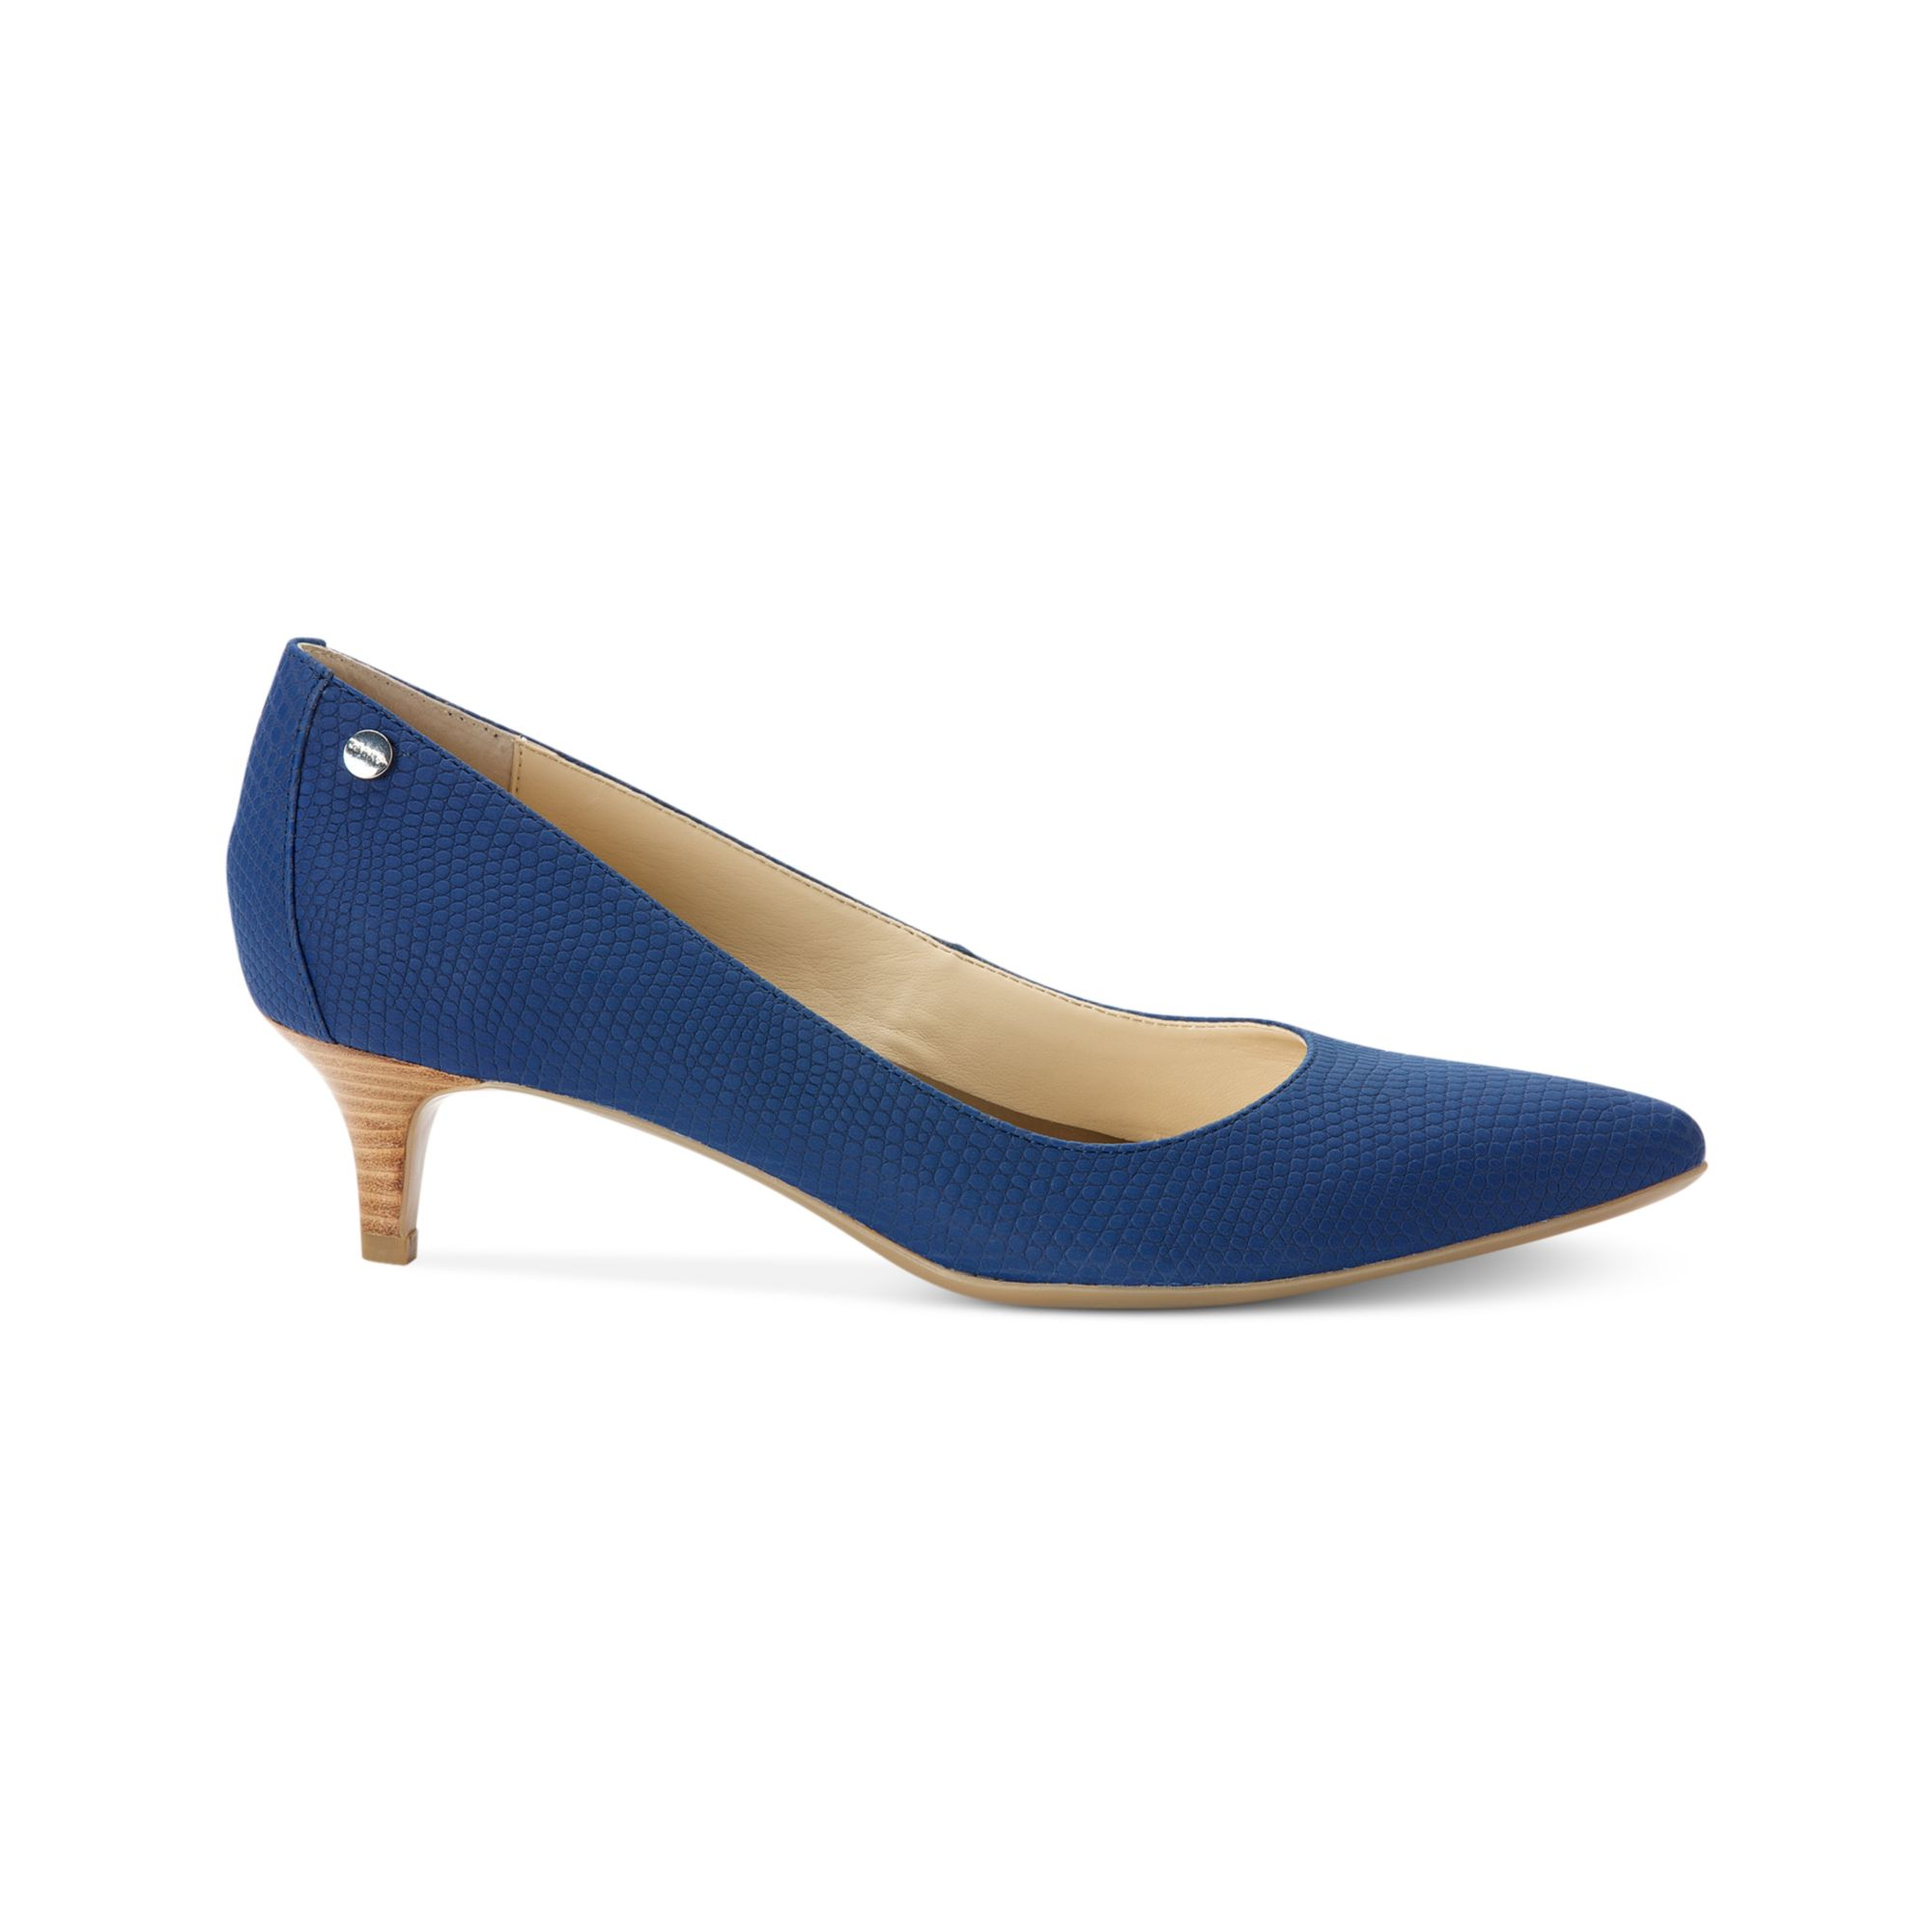 Lyst - Calvin klein Womens Nicki Kitten Heel Pumps in Blue